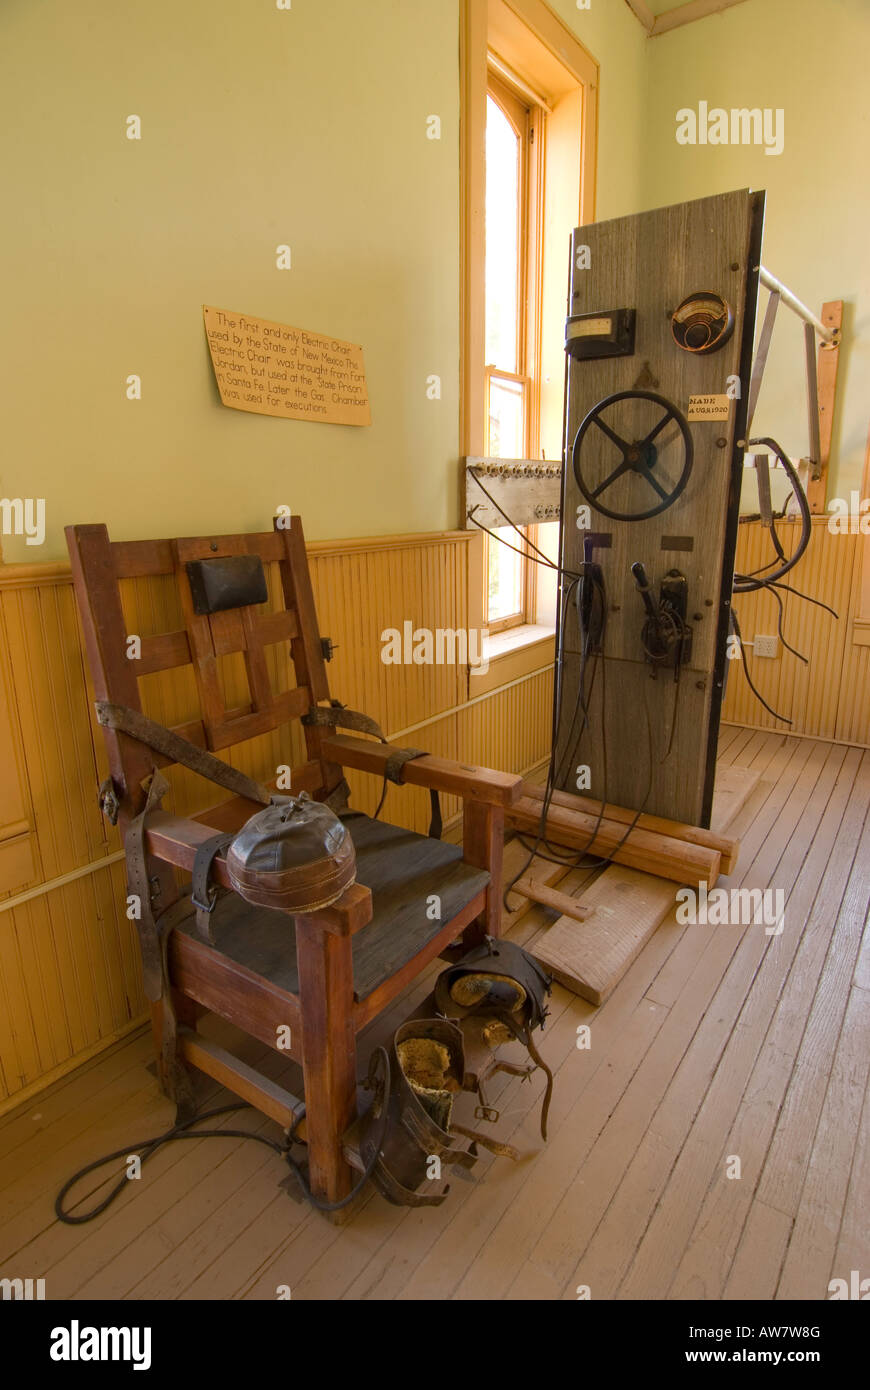 u0027Old Sparkyu0027 is the electric chair that was used in New Mexico - Stock u0027 & Electric Chair Execution Stock Photos u0026 Electric Chair Execution ...